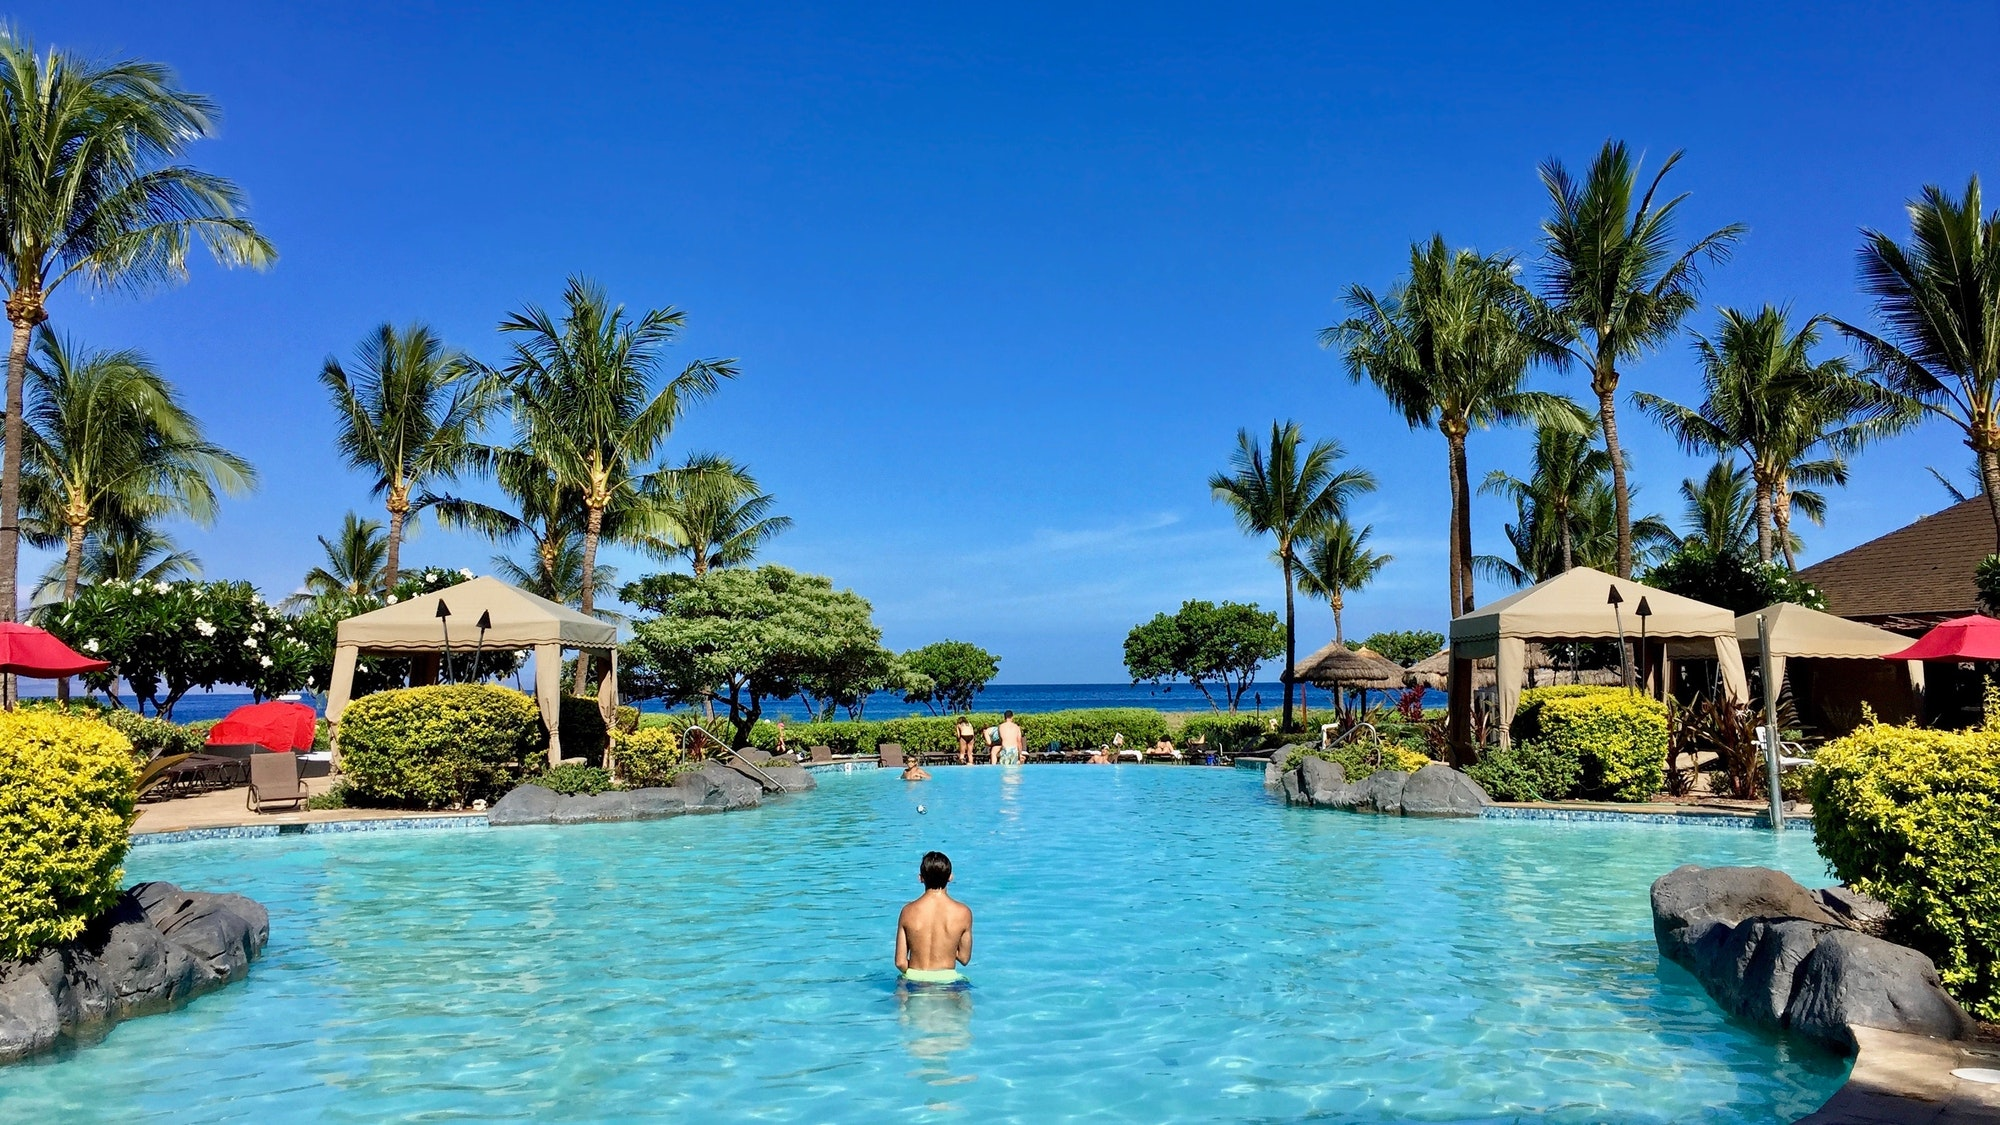 At the pool in paradise